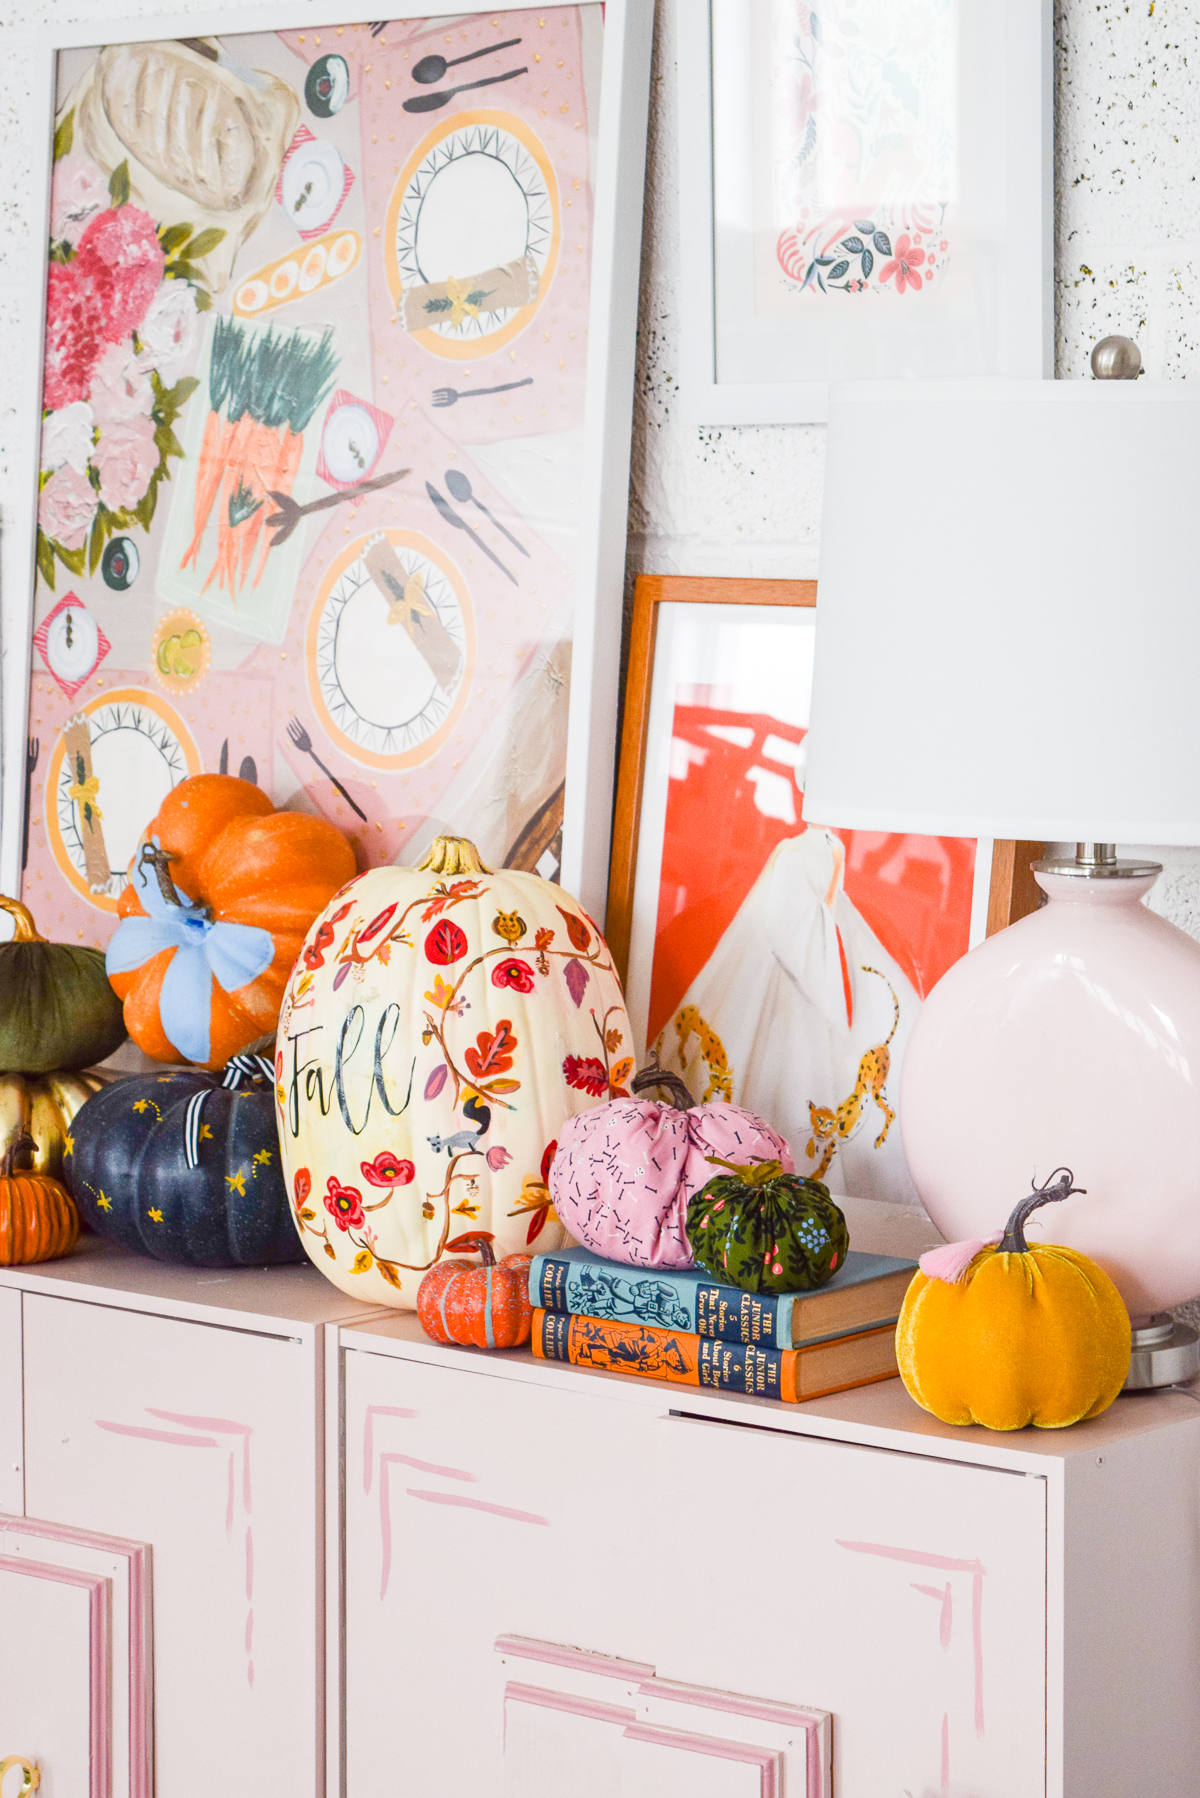 pink dresser with pumpkins and art